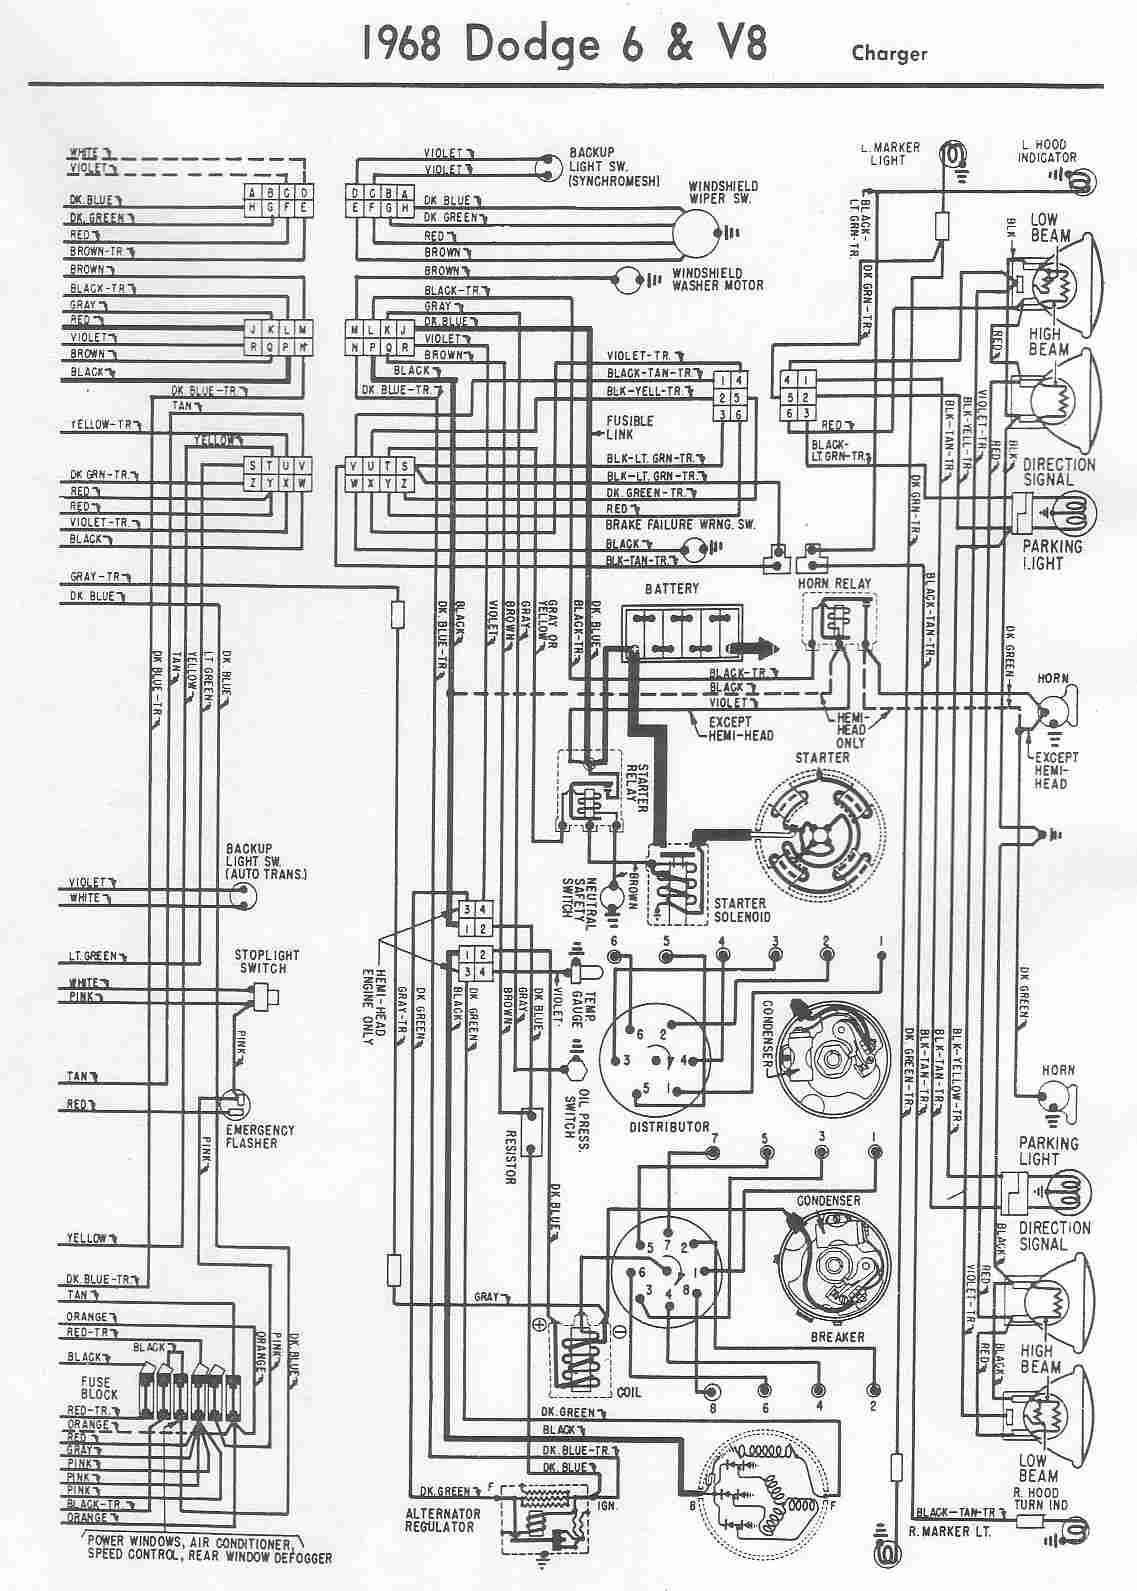 charger electrical wiring diagram of 1968 dodge 6 and v8?t=1508404771 dodge car manuals, wiring diagrams pdf & fault codes 1970 dodge charger wiring diagram at gsmx.co